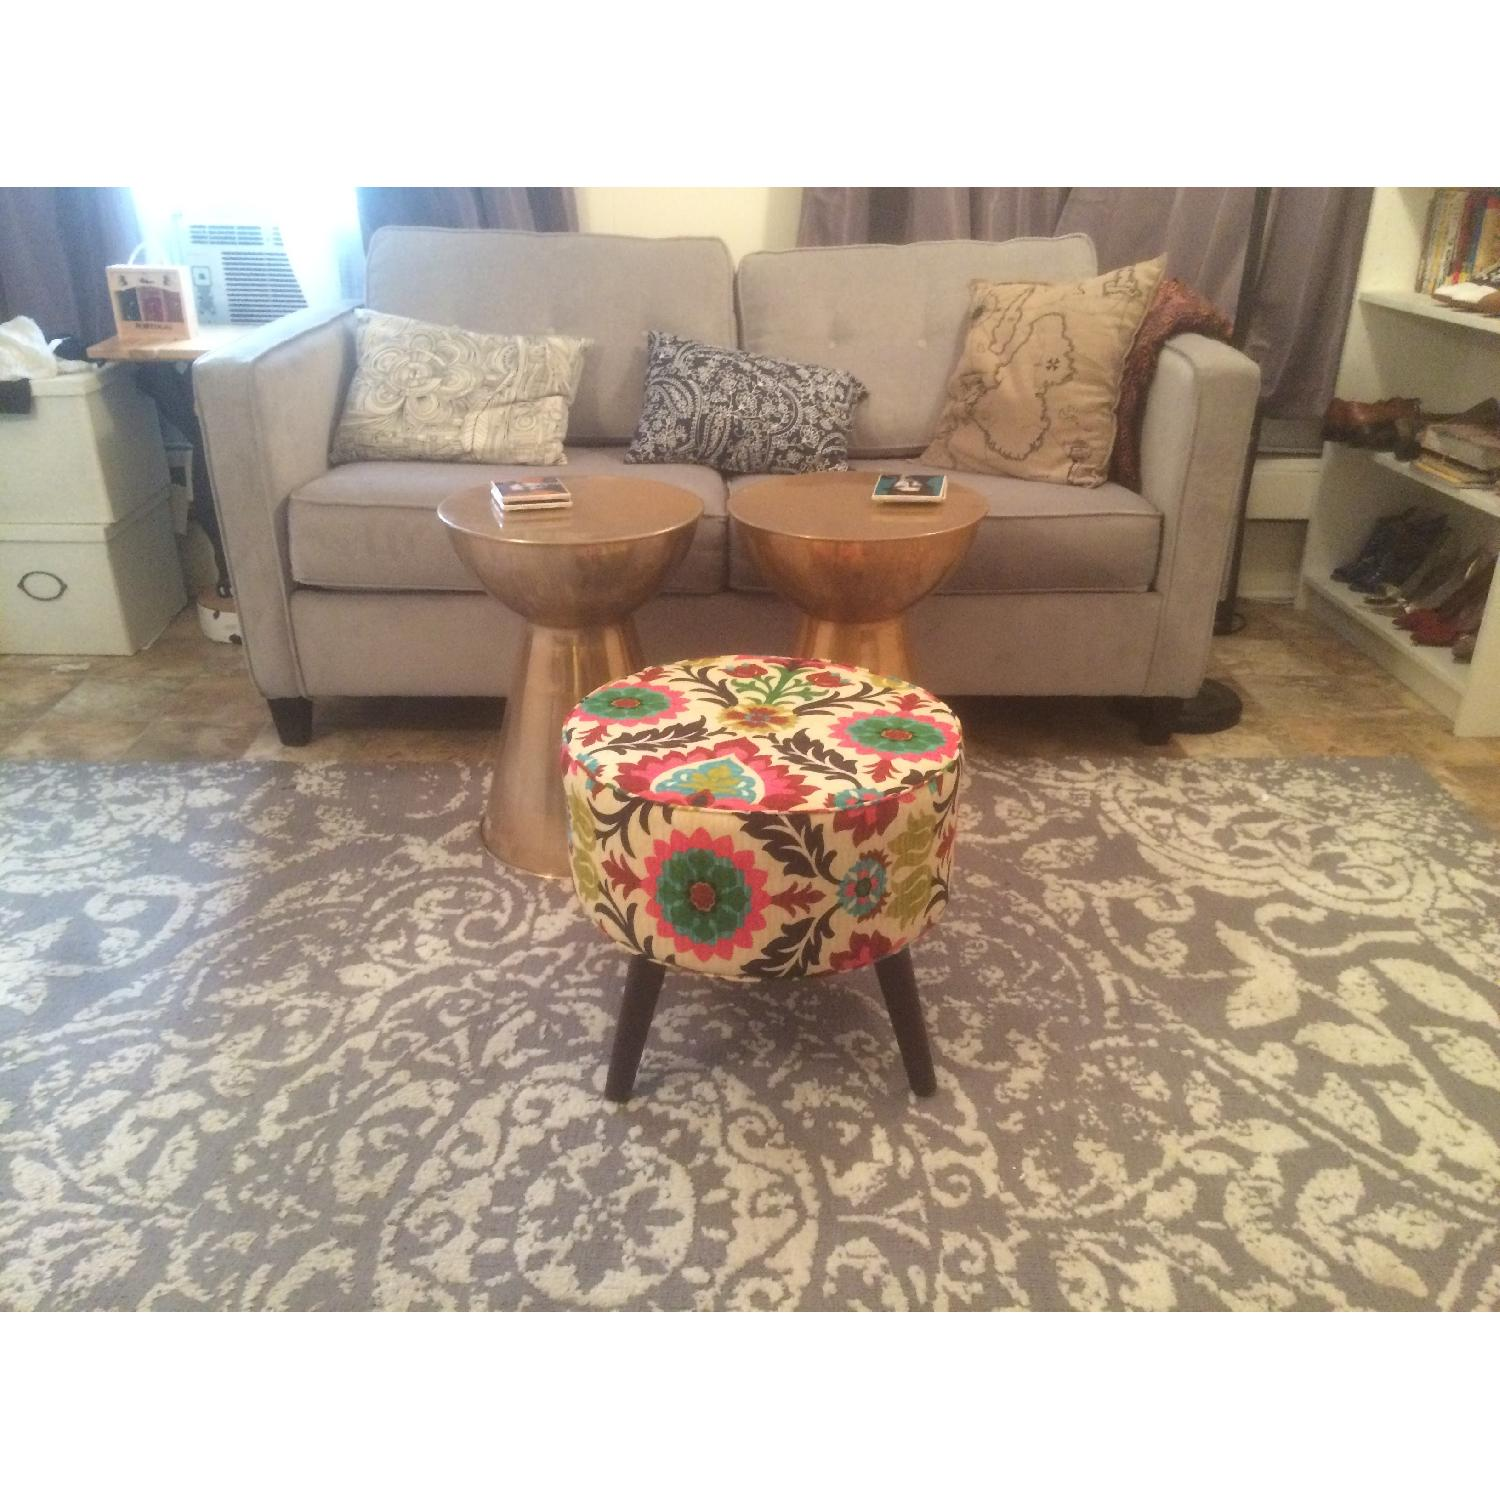 Gray & White Patterned Rug - image-1